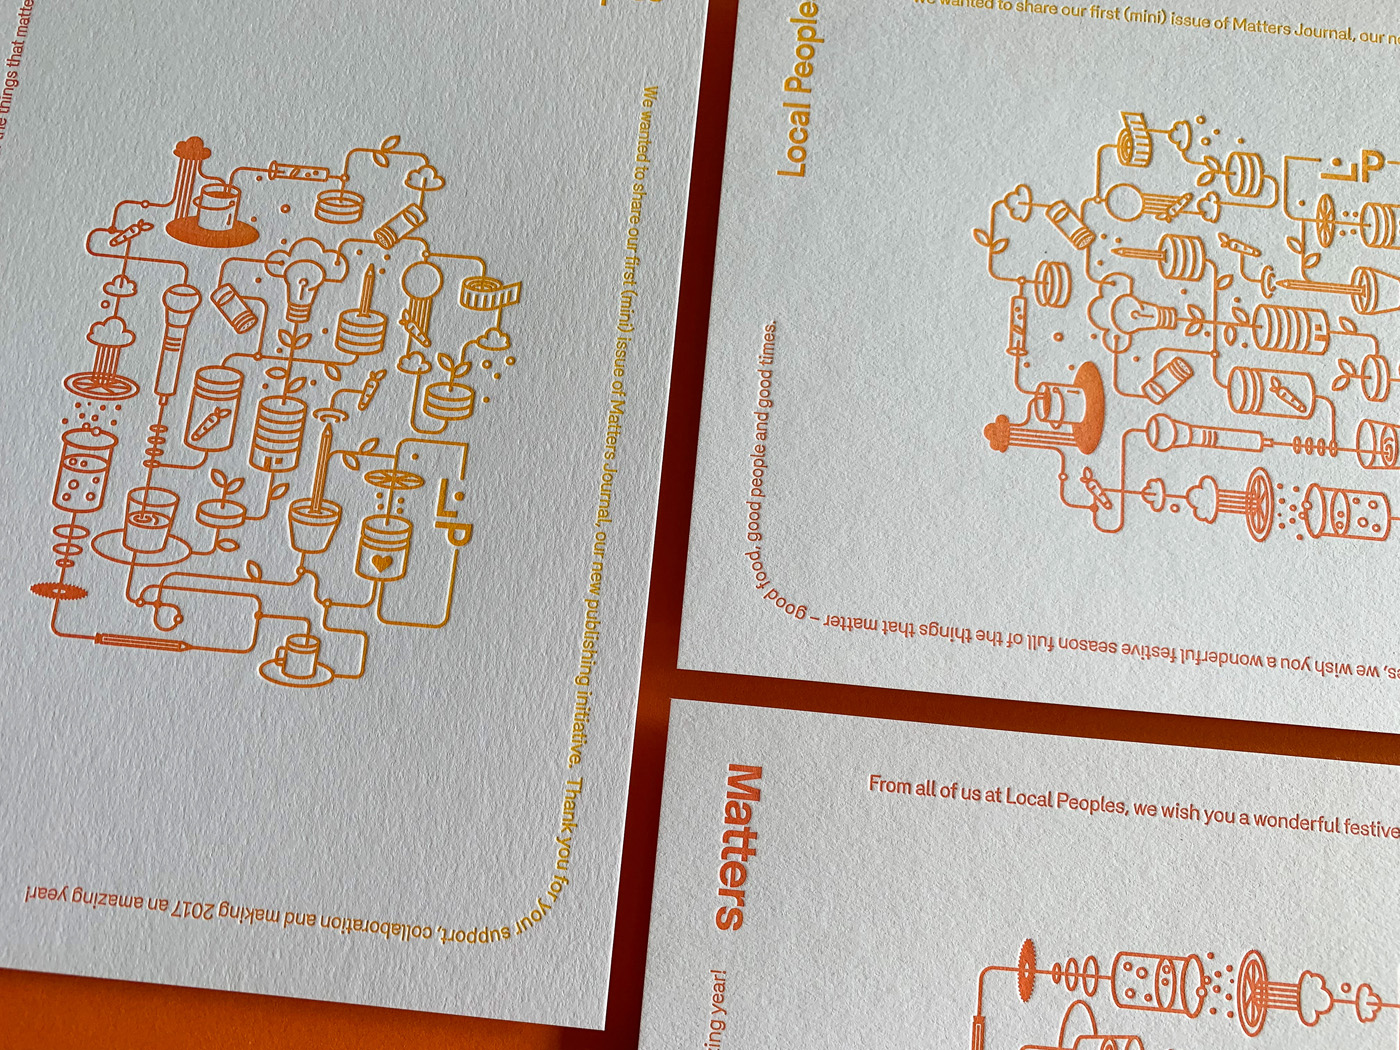 Letterpress printed Christmas cards for Local Peoples on Stephen Gesso White 1